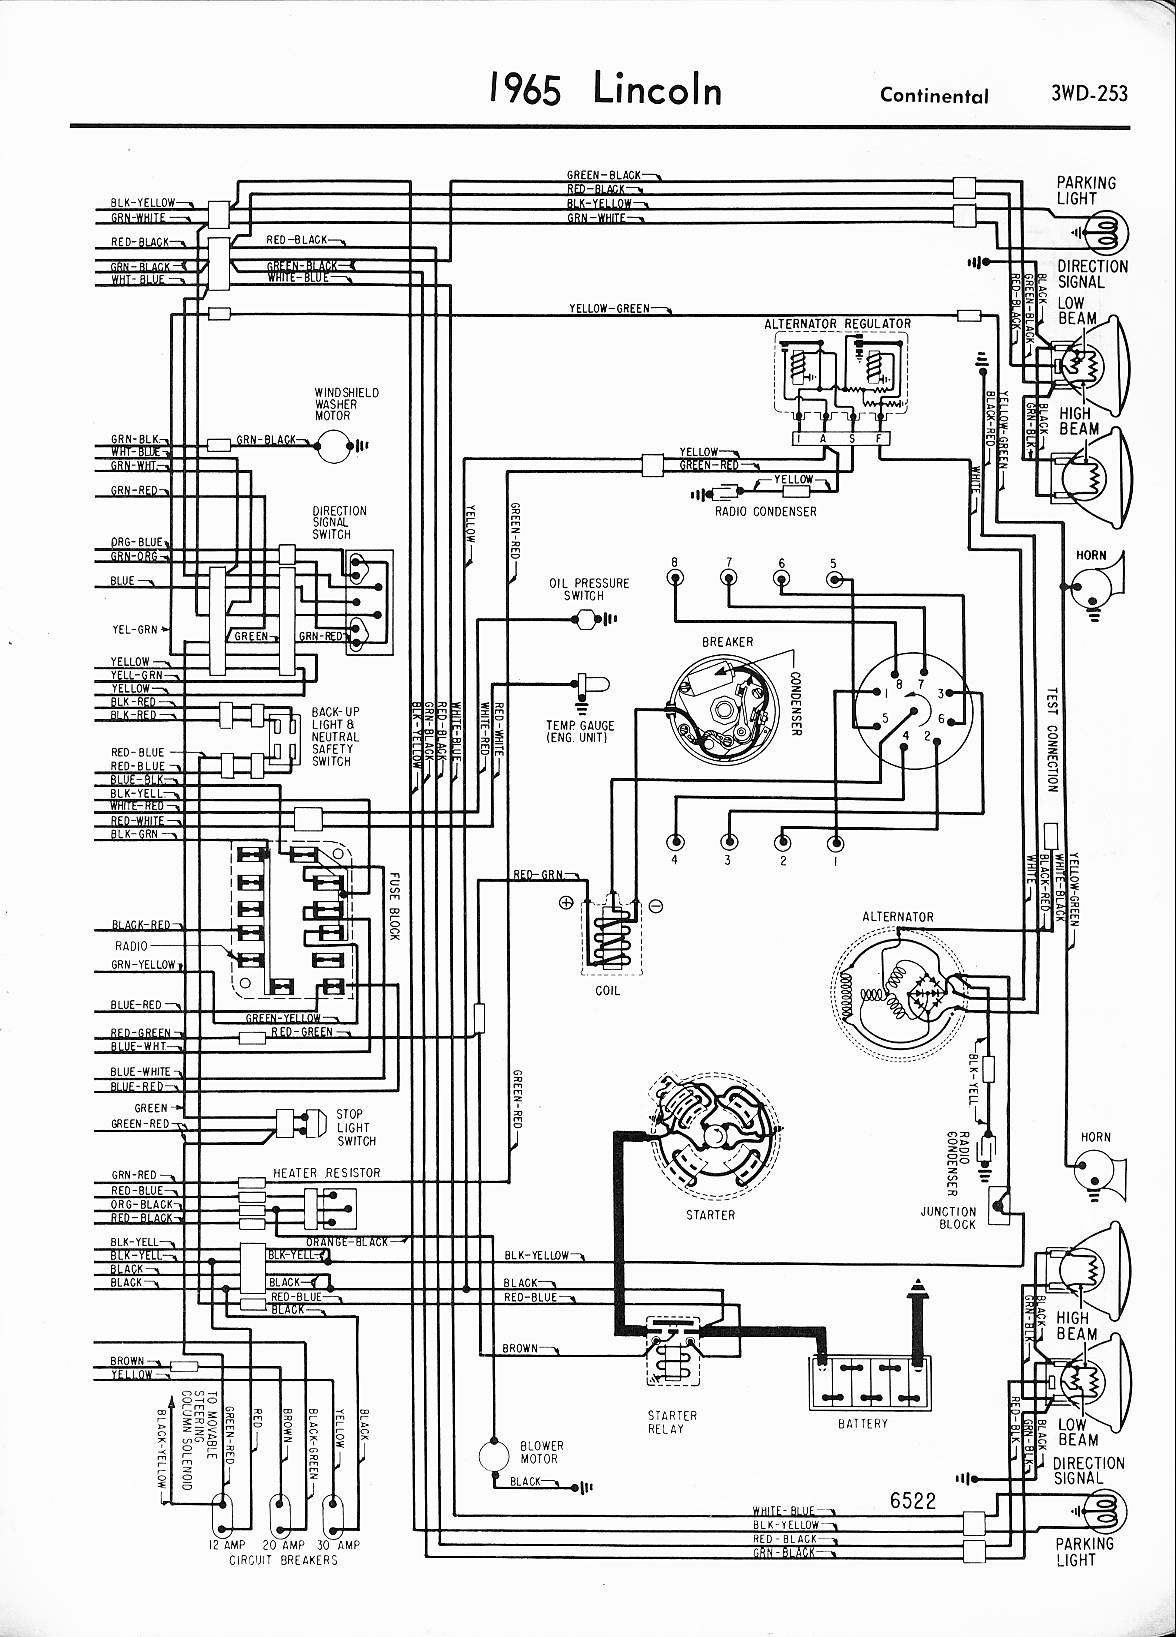 1965 lincoln continental wiring diagrams - image details, Wiring diagram